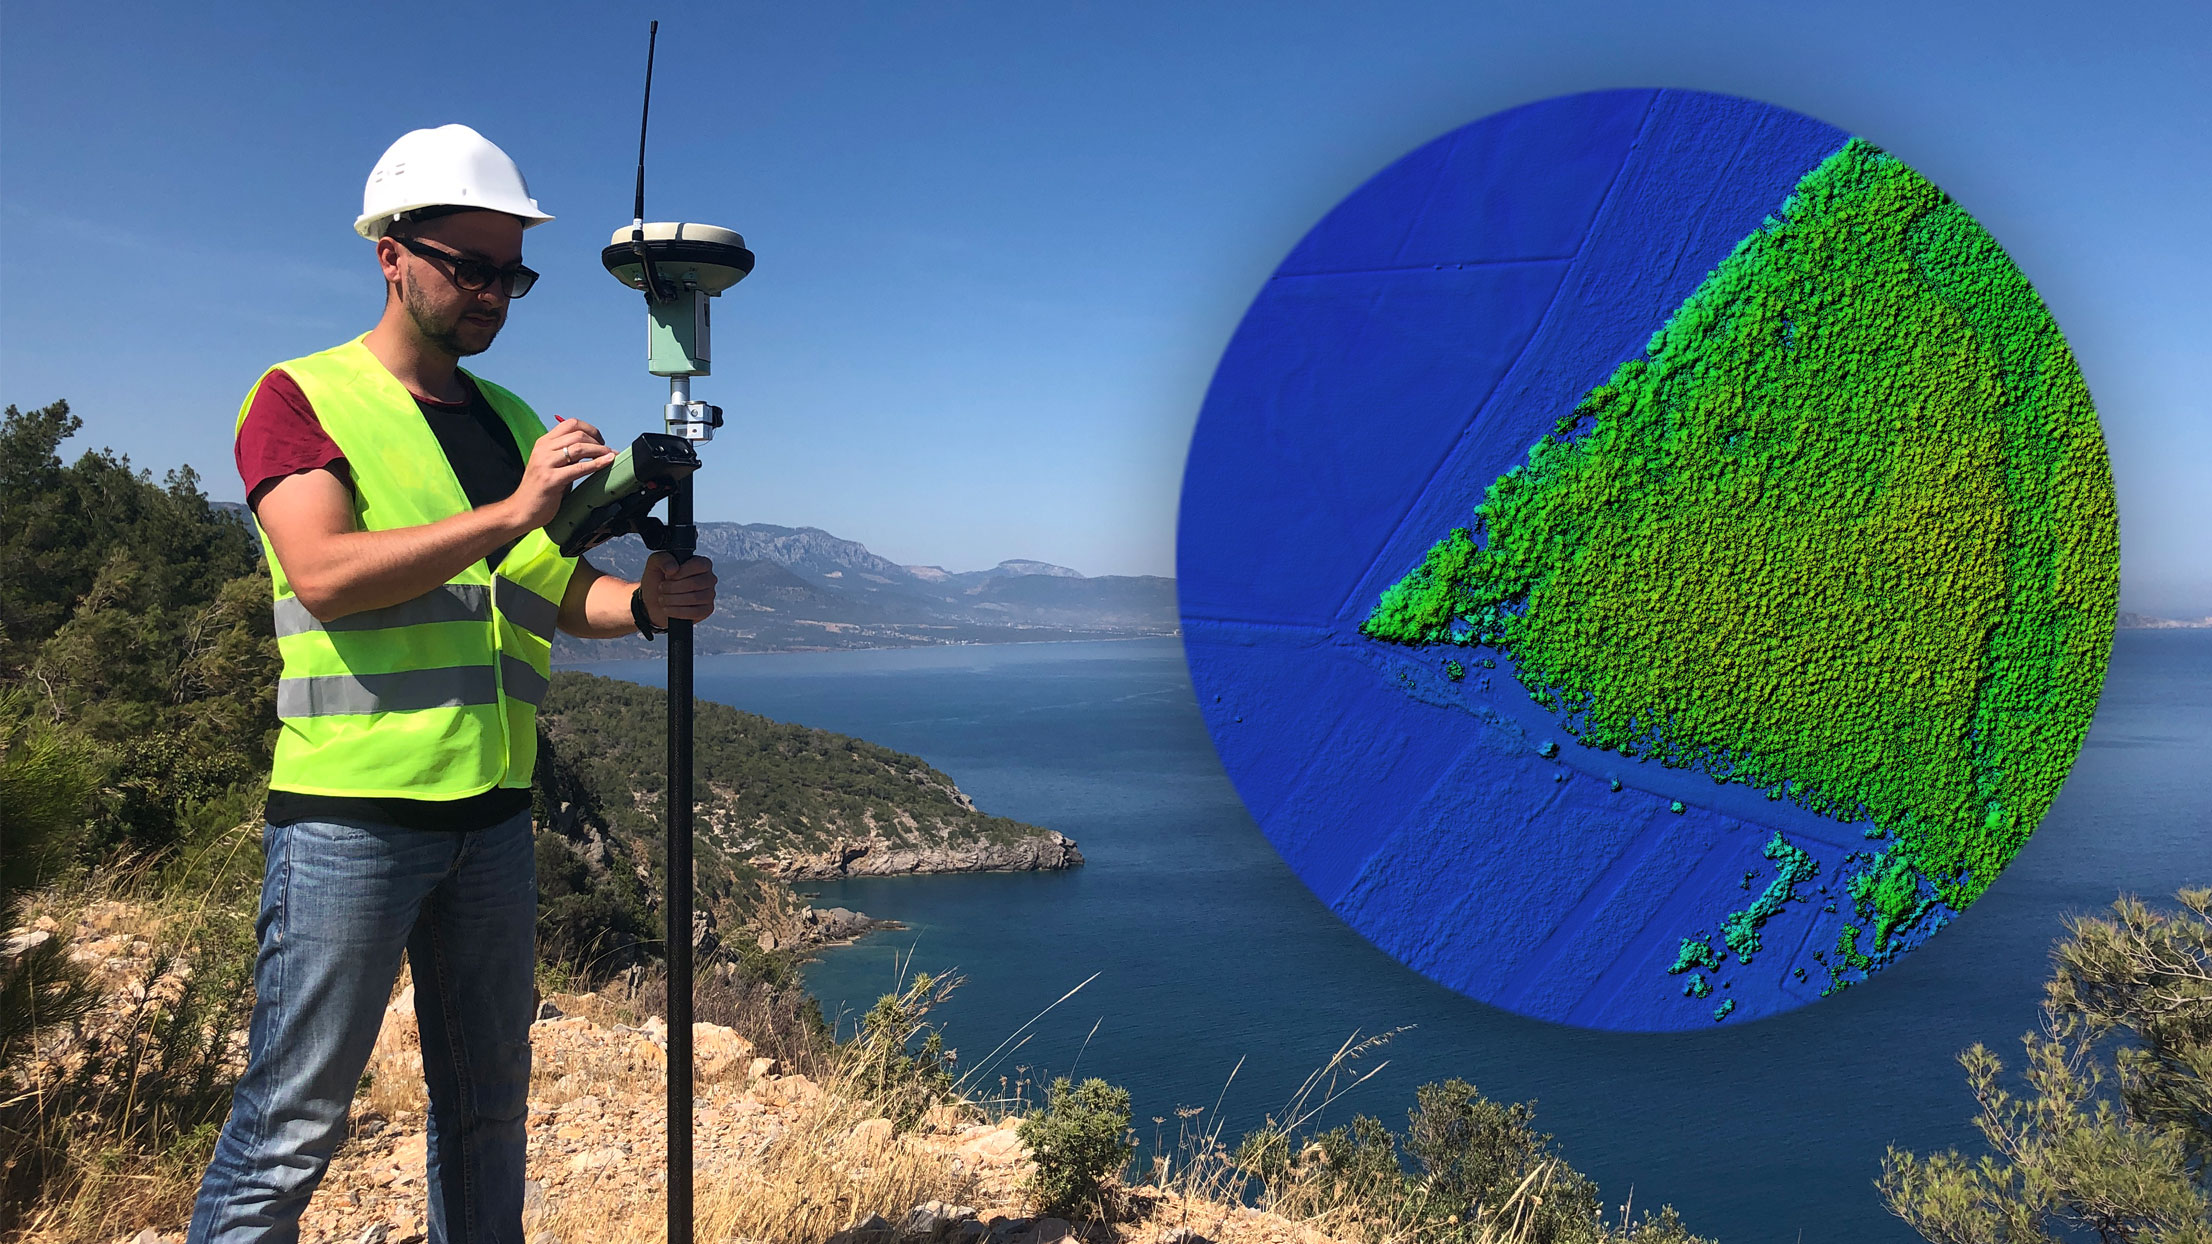 Pic: Surveyor outside with inset diagram of GIS water network